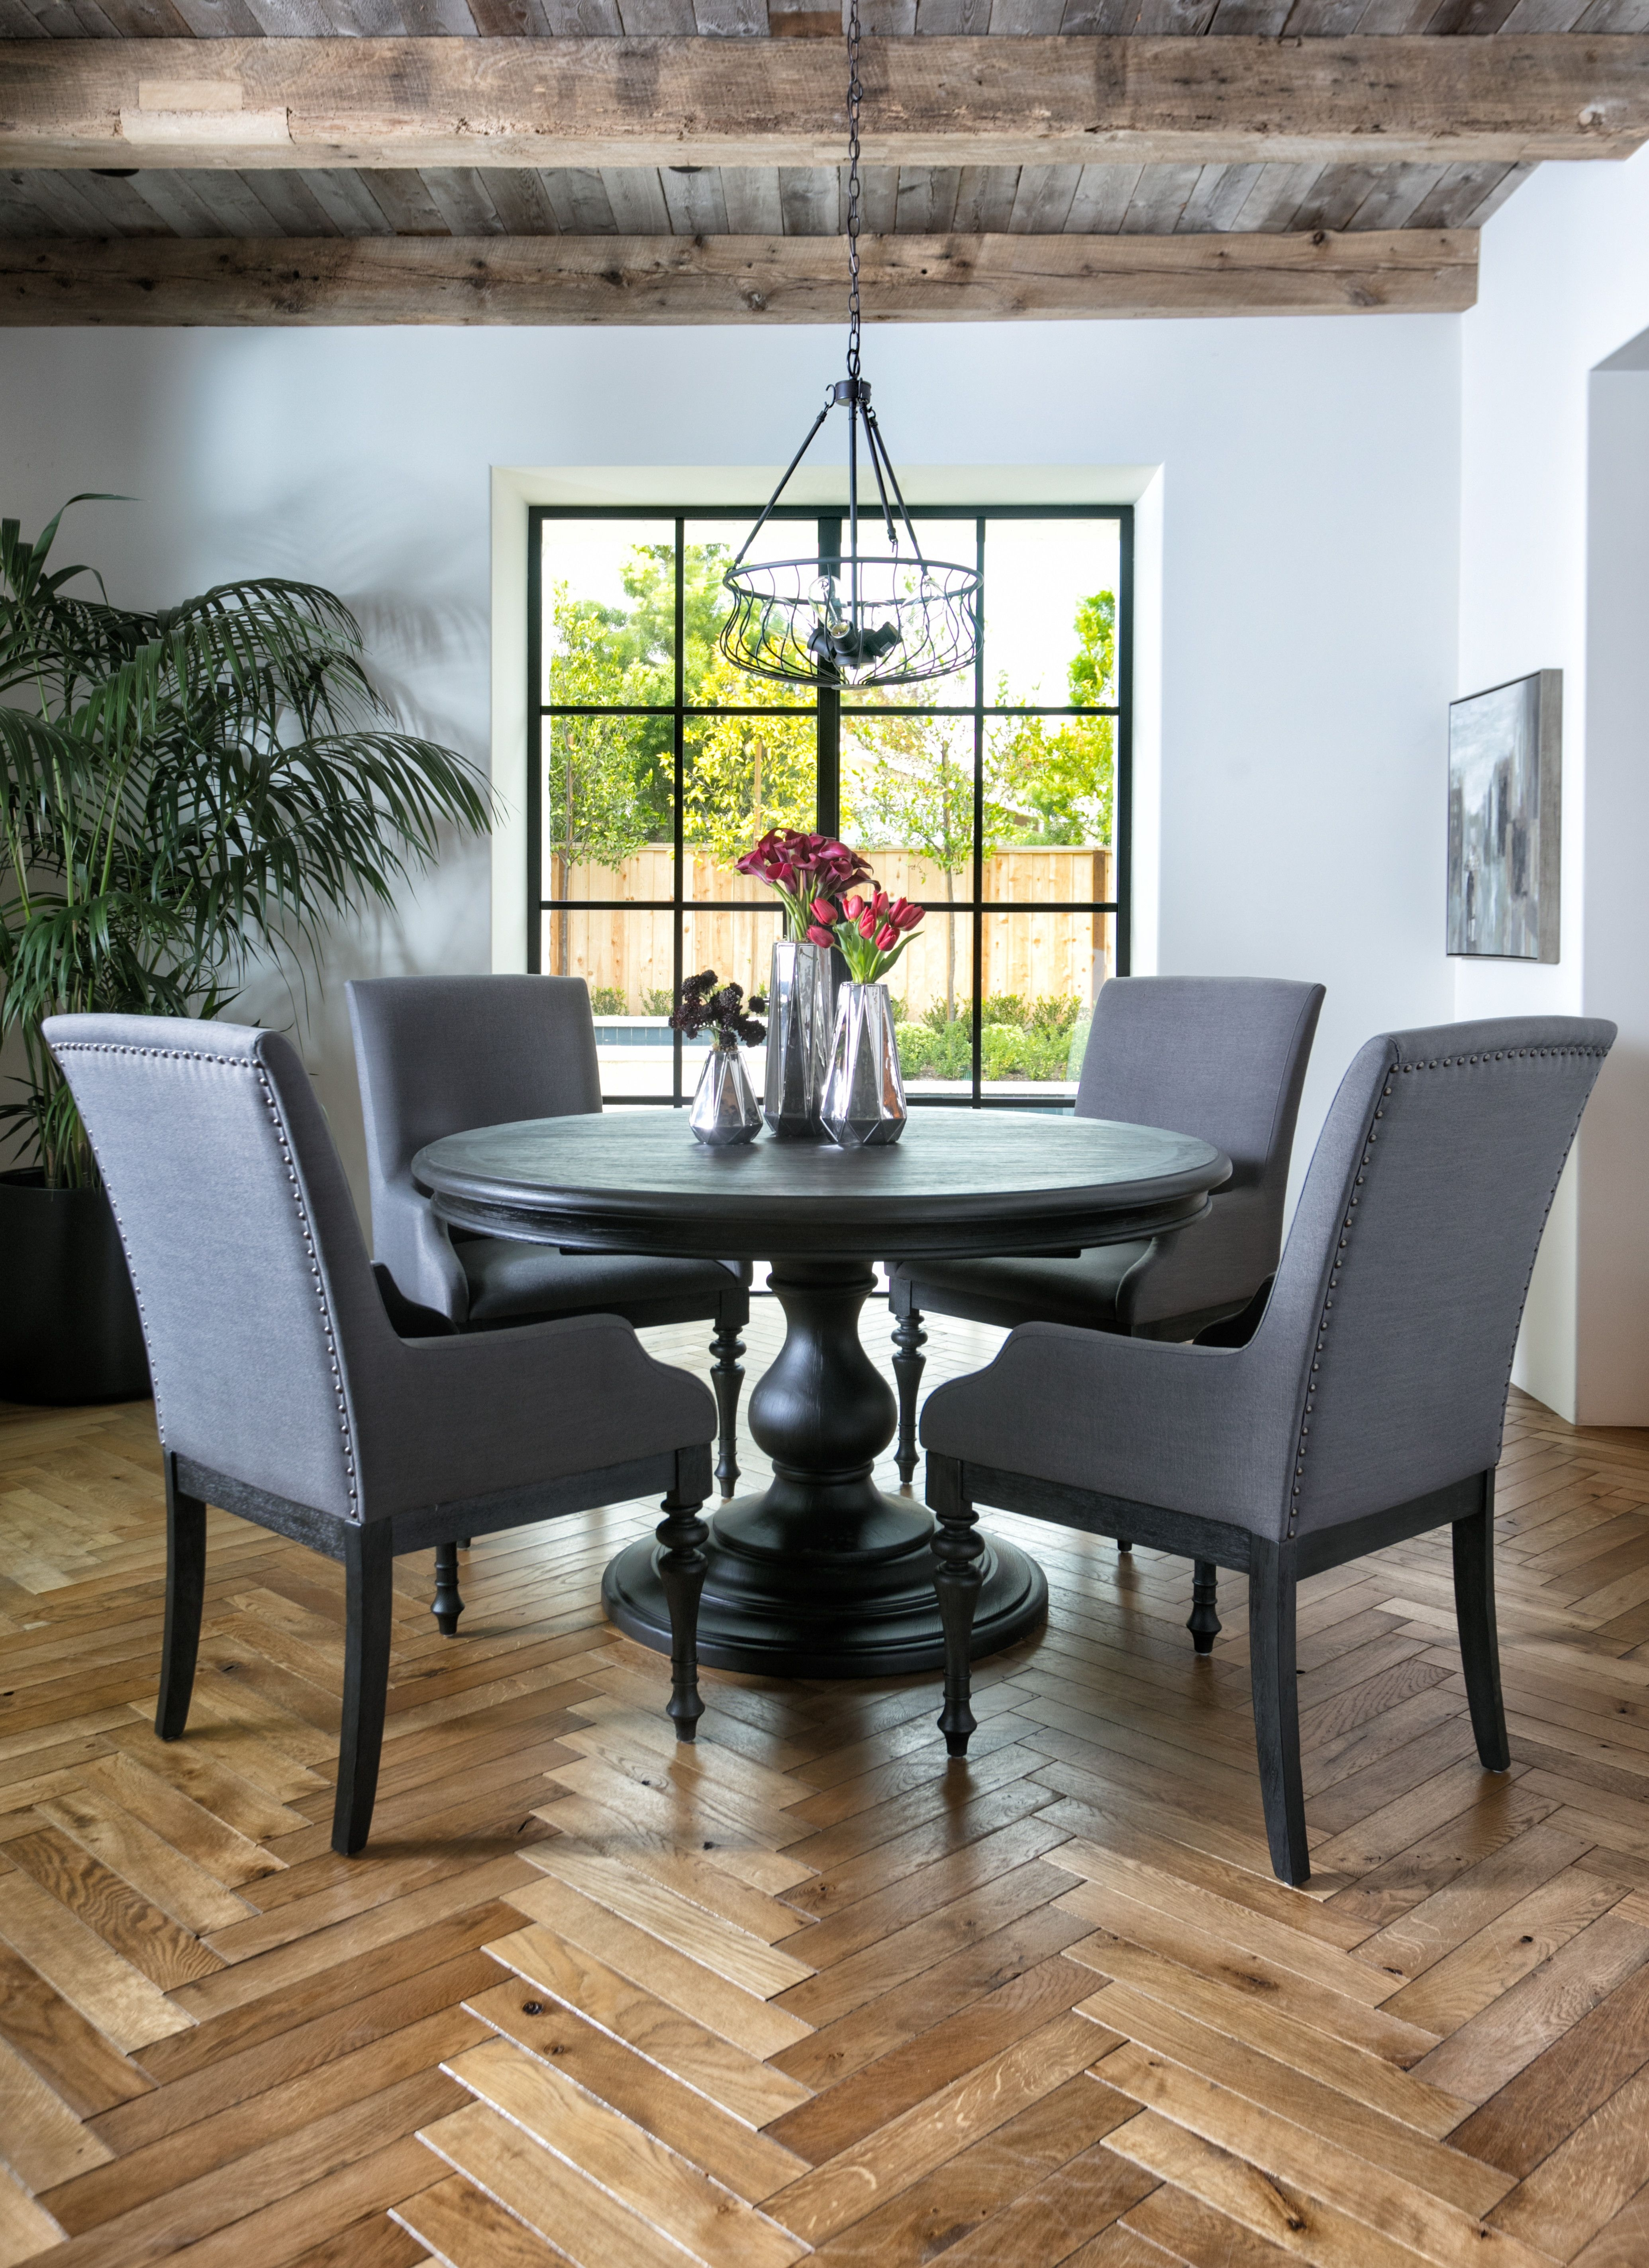 Caira Upholstered Diamond Back Side Chairs For Current Caira Black 5 Piece Round Dining Set With Diamond Back Side Chairs (#4 of 20)